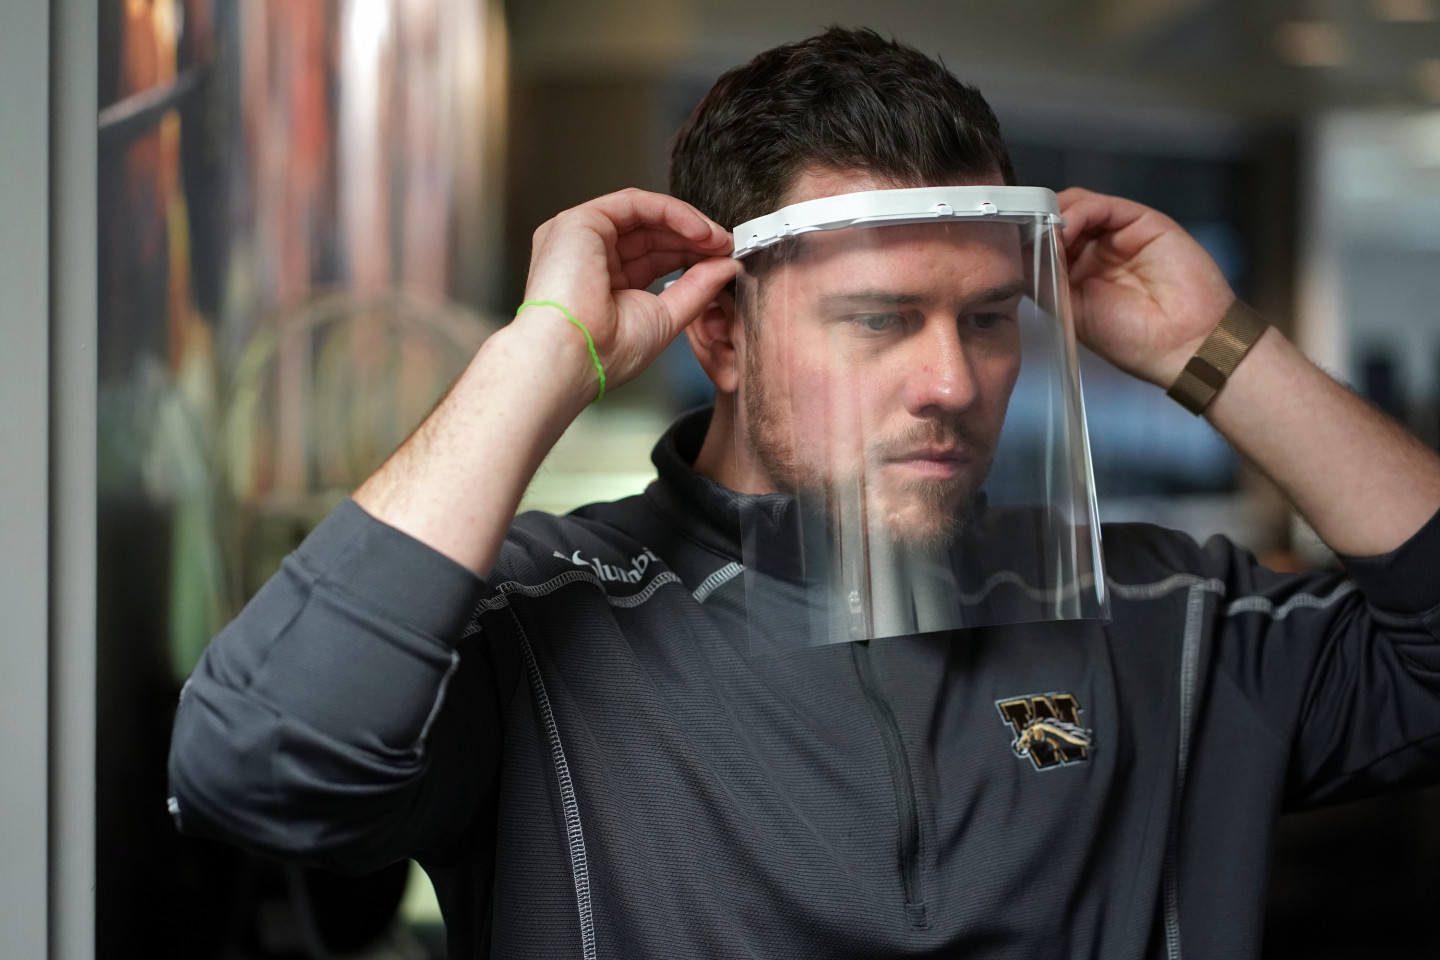 A staff member fits a face shield on his head.